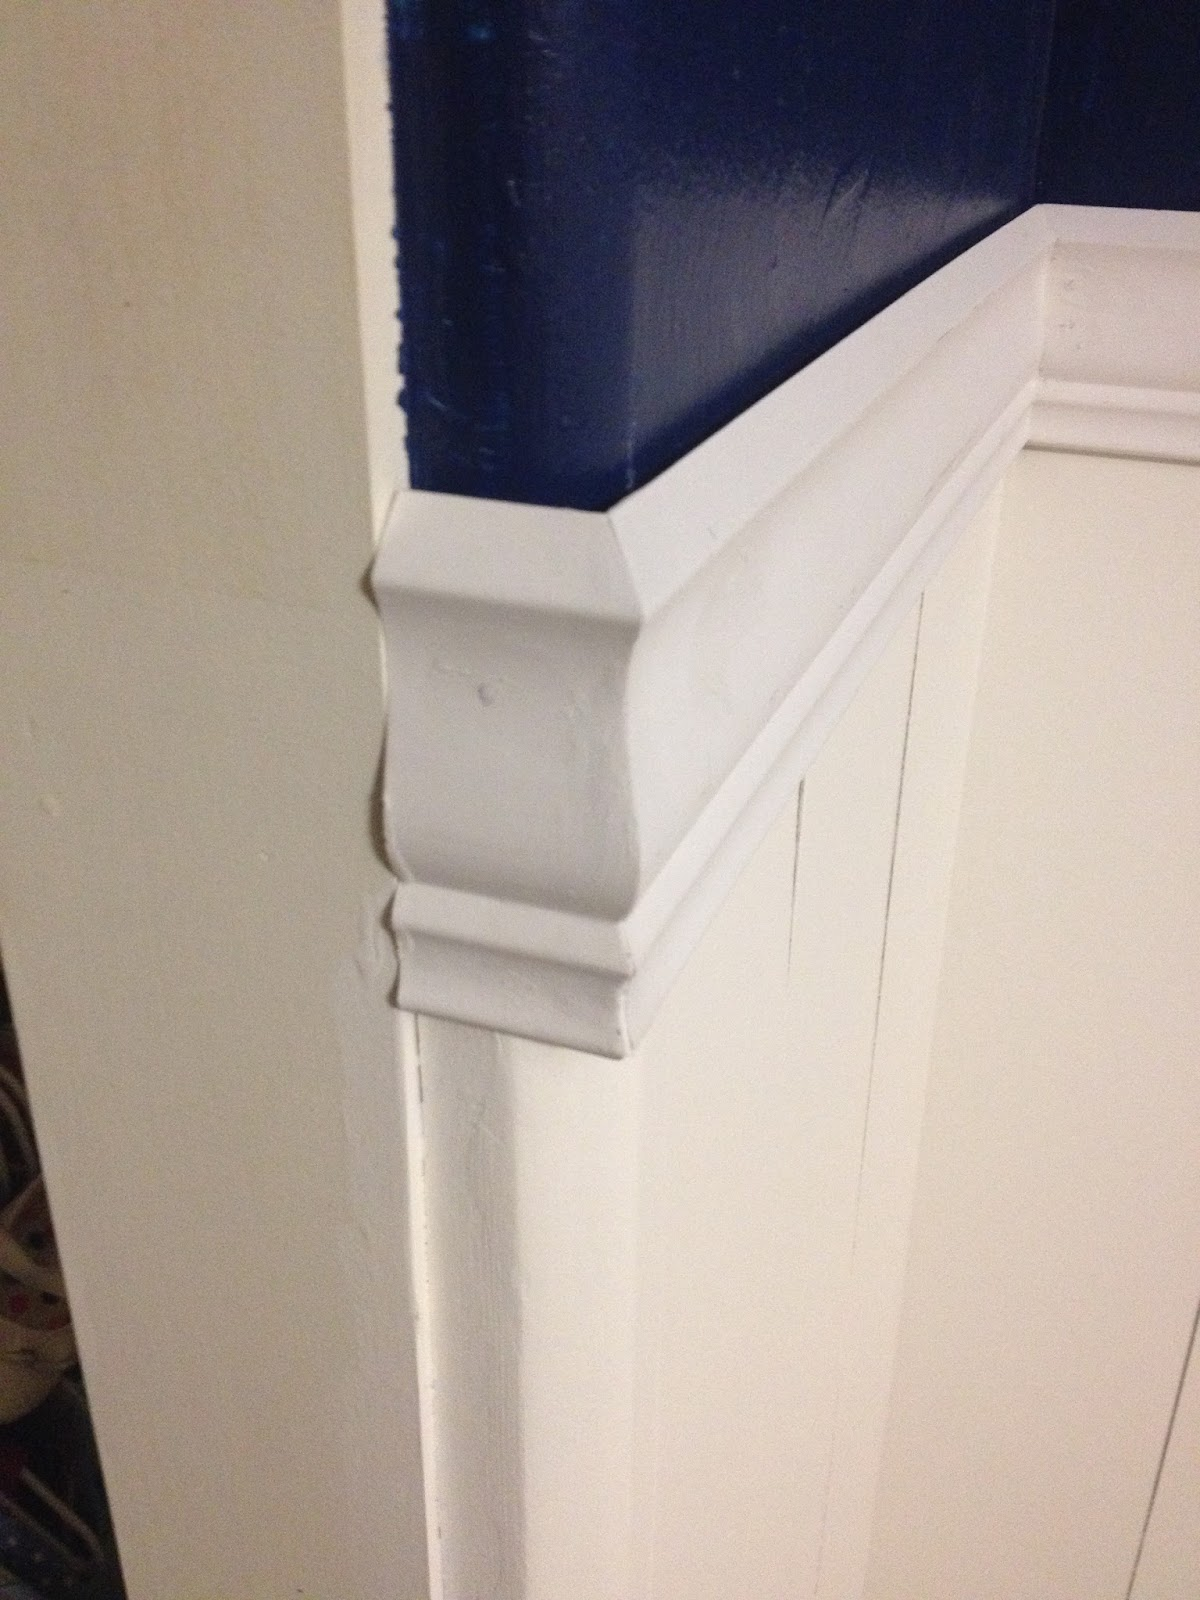 chair rail rounded corners